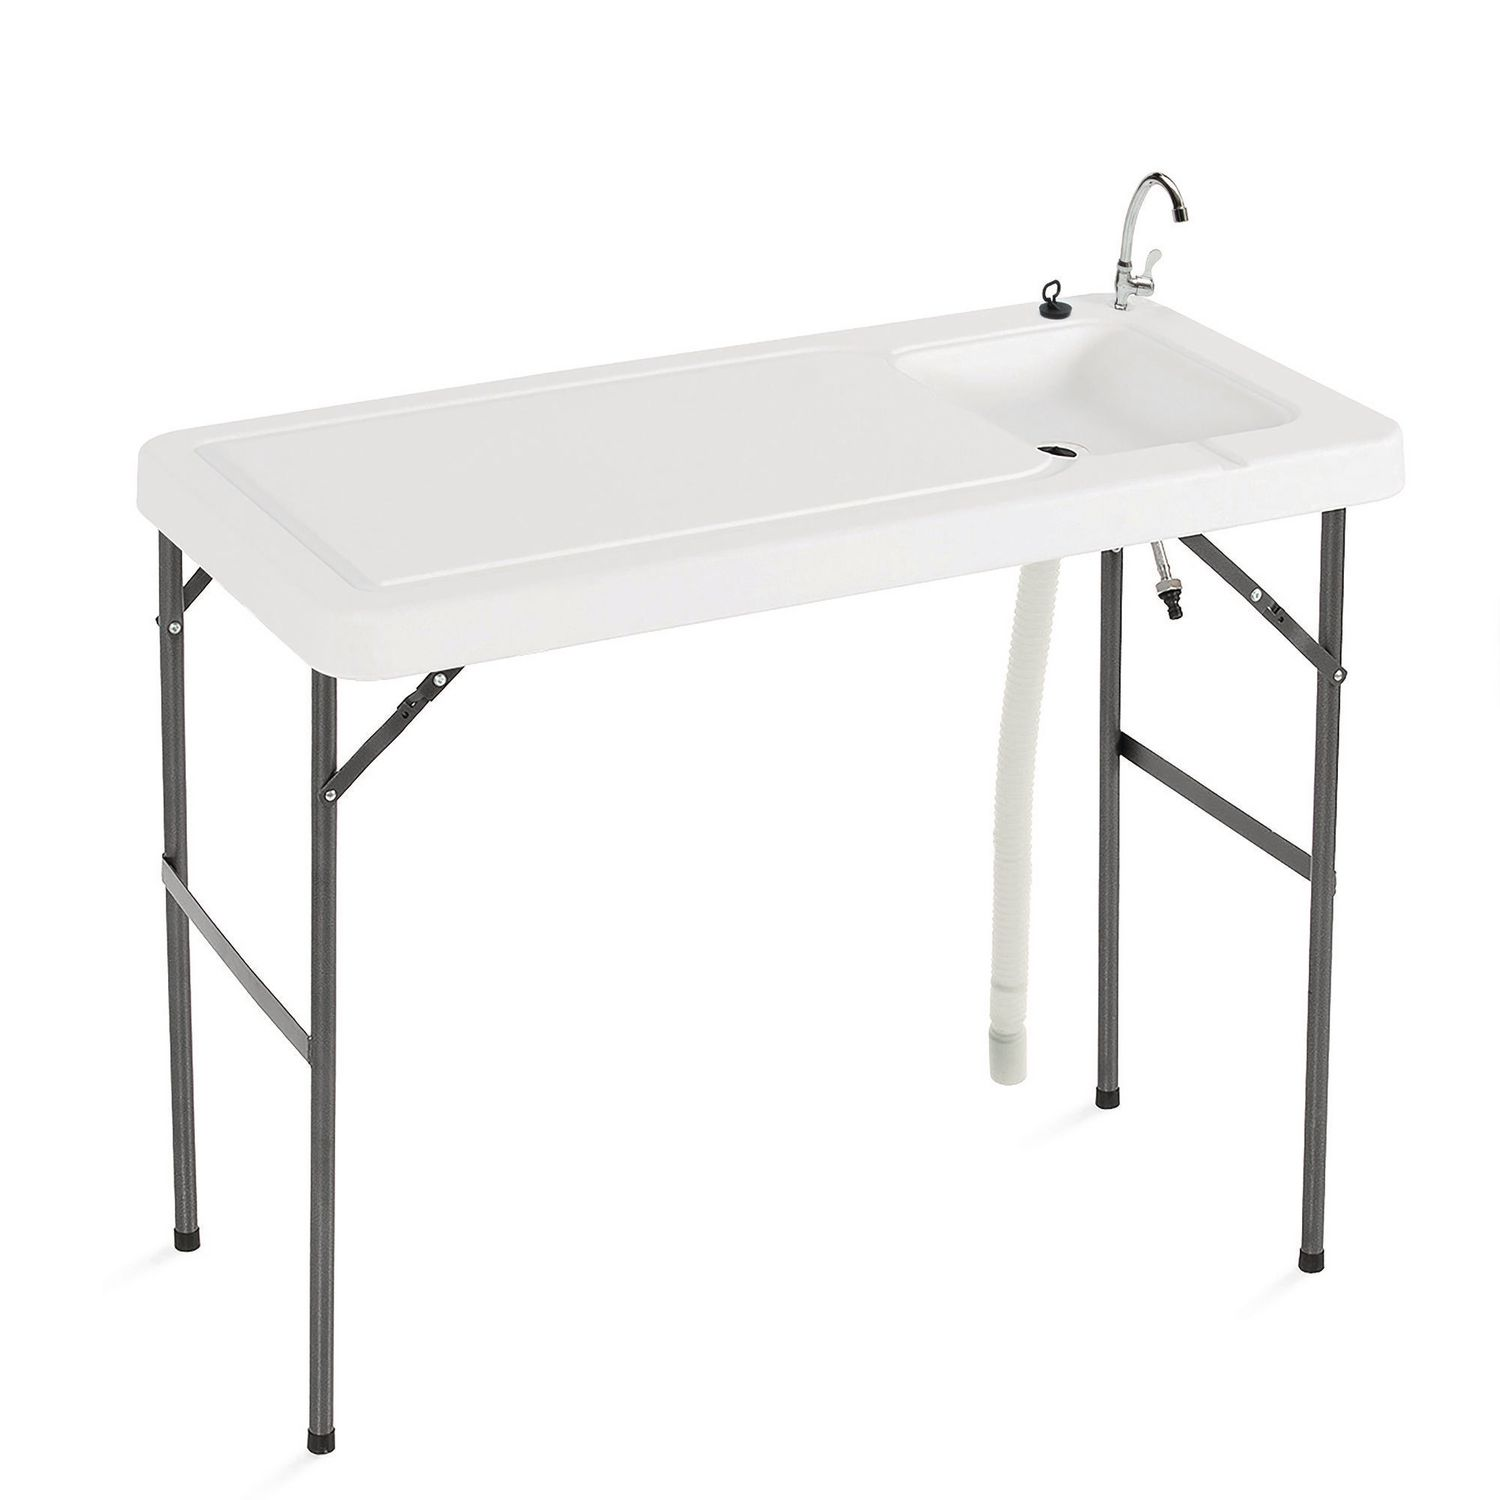 Excalibur Multi-Use Folding Table with Faucet and Sink | Walmart Canada